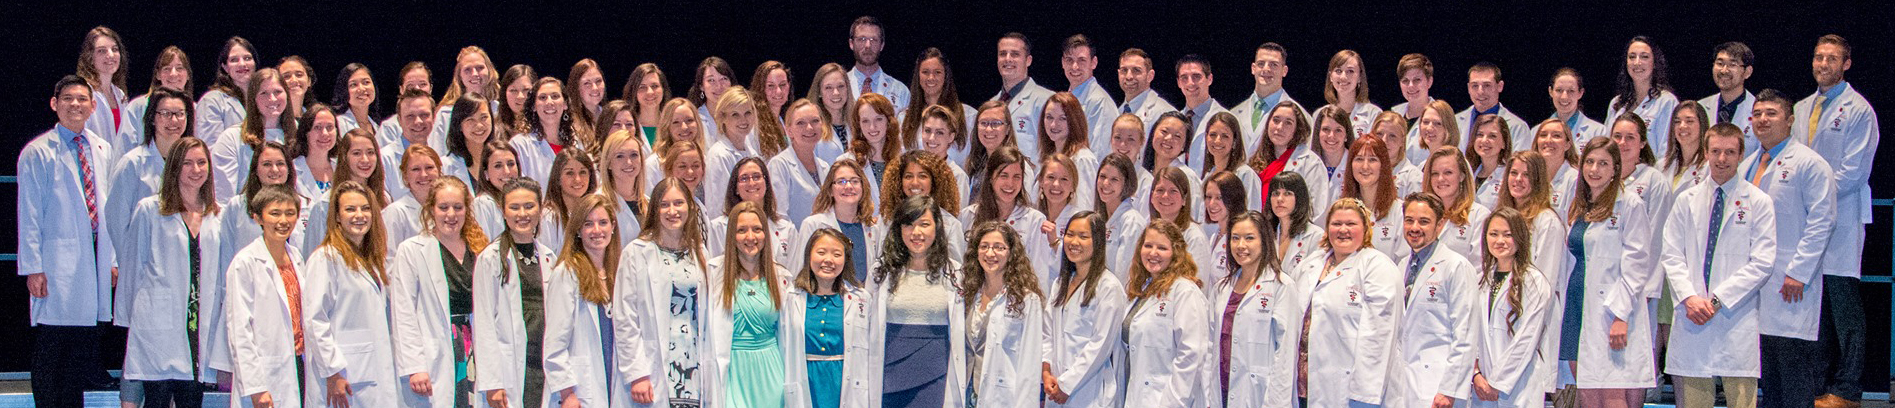 Image of DVM Graduating class in white coats